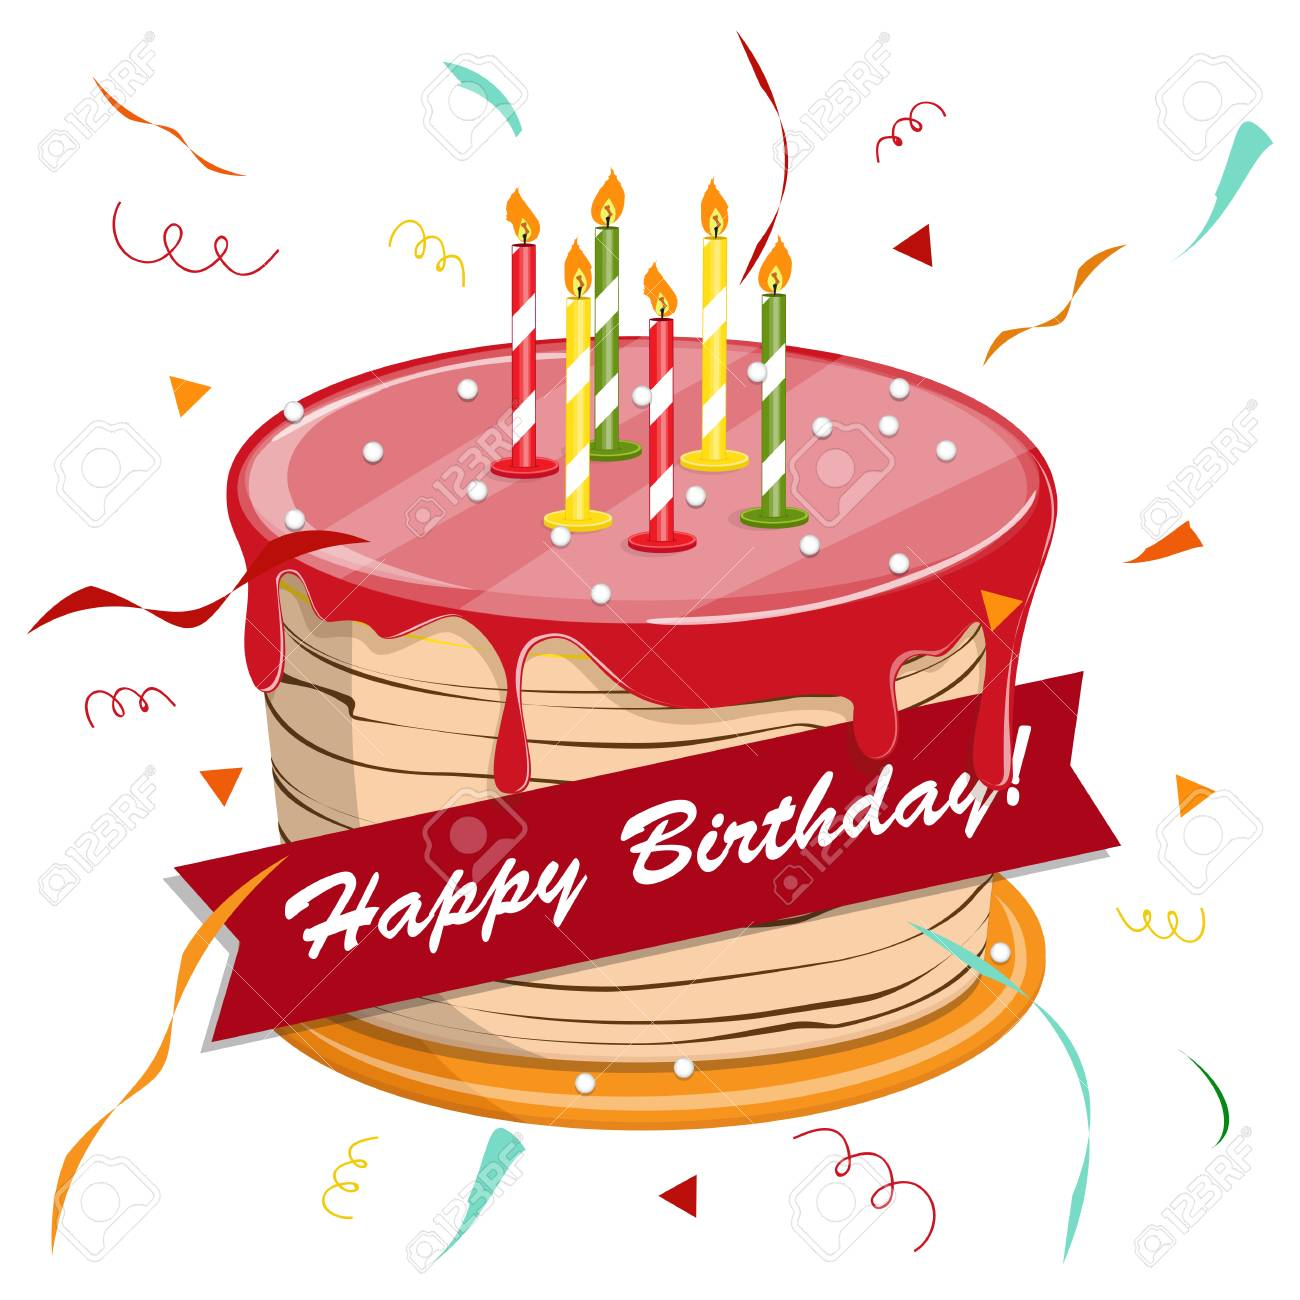 Cute Cartoon Happy Birthday Cake With Candles Royalty Free Cliparts